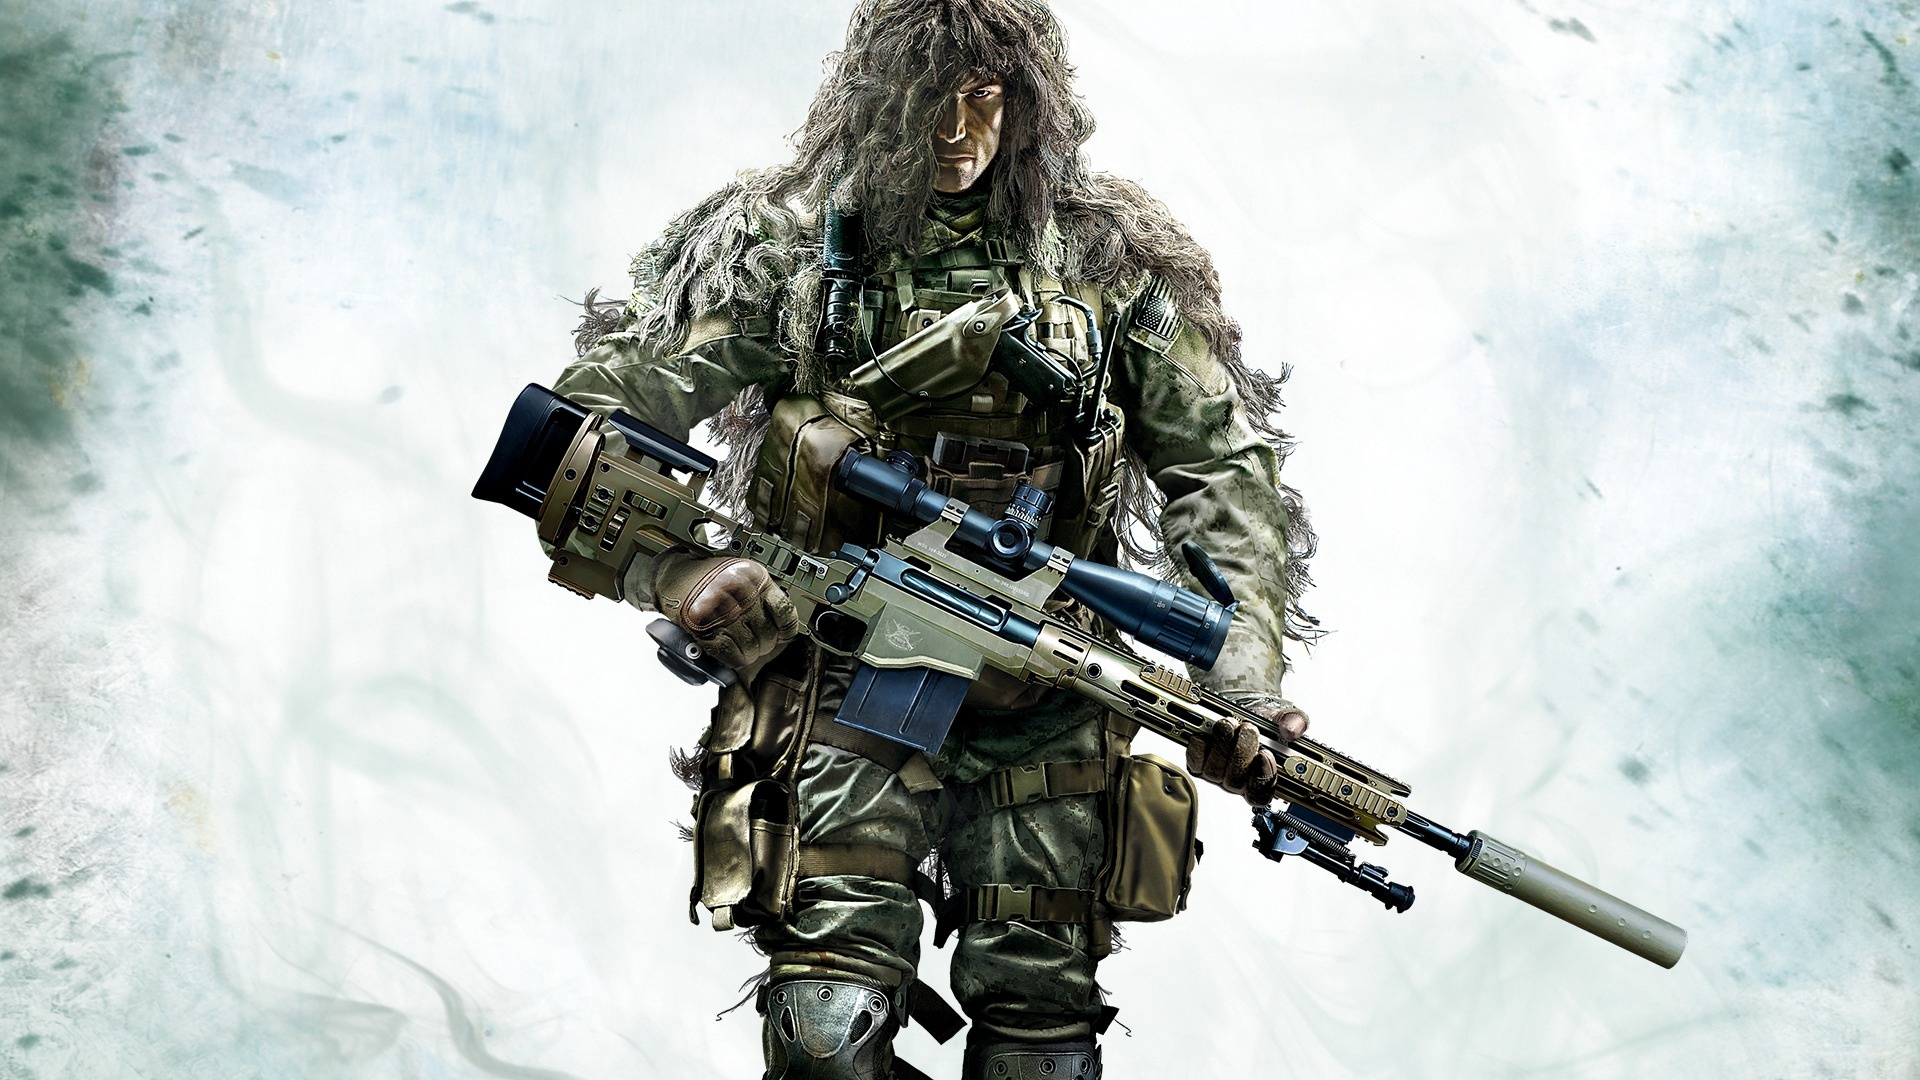 hd-sniper-wallpaper-ghost-warrior-soldat-guis-fonds-cran-us-hd-wallpapers-sniper-wallpaper-ghost-warrior-soldat-guis-fonds-cran-1920x1080-wallpaper.jpg